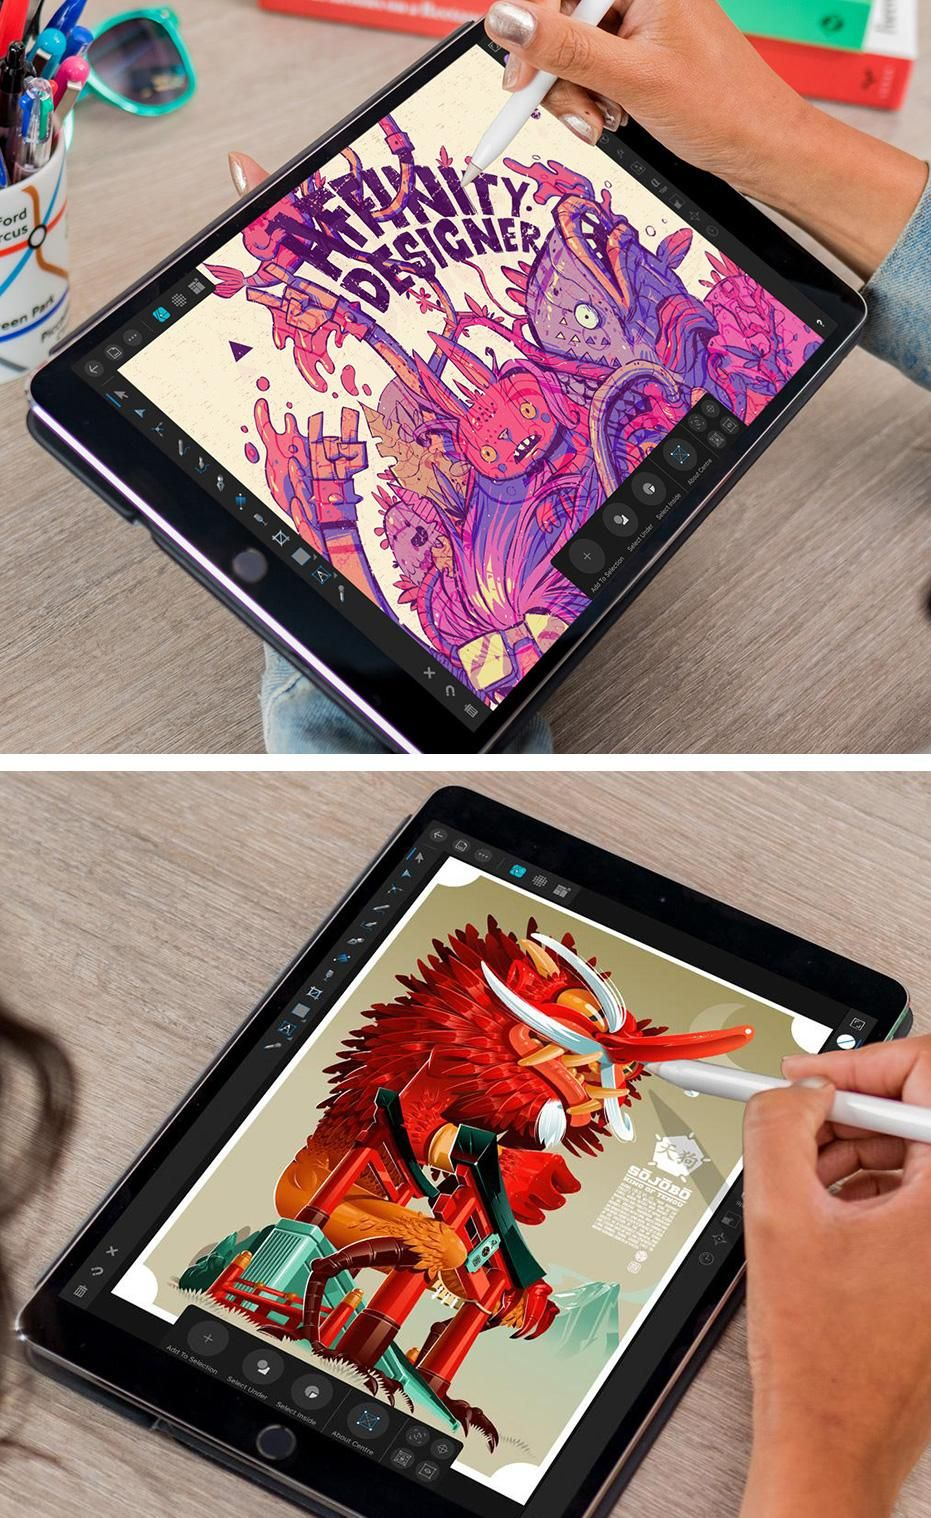 The 15 Best Apps For Drawing And Painting On Your Ipad In 2020